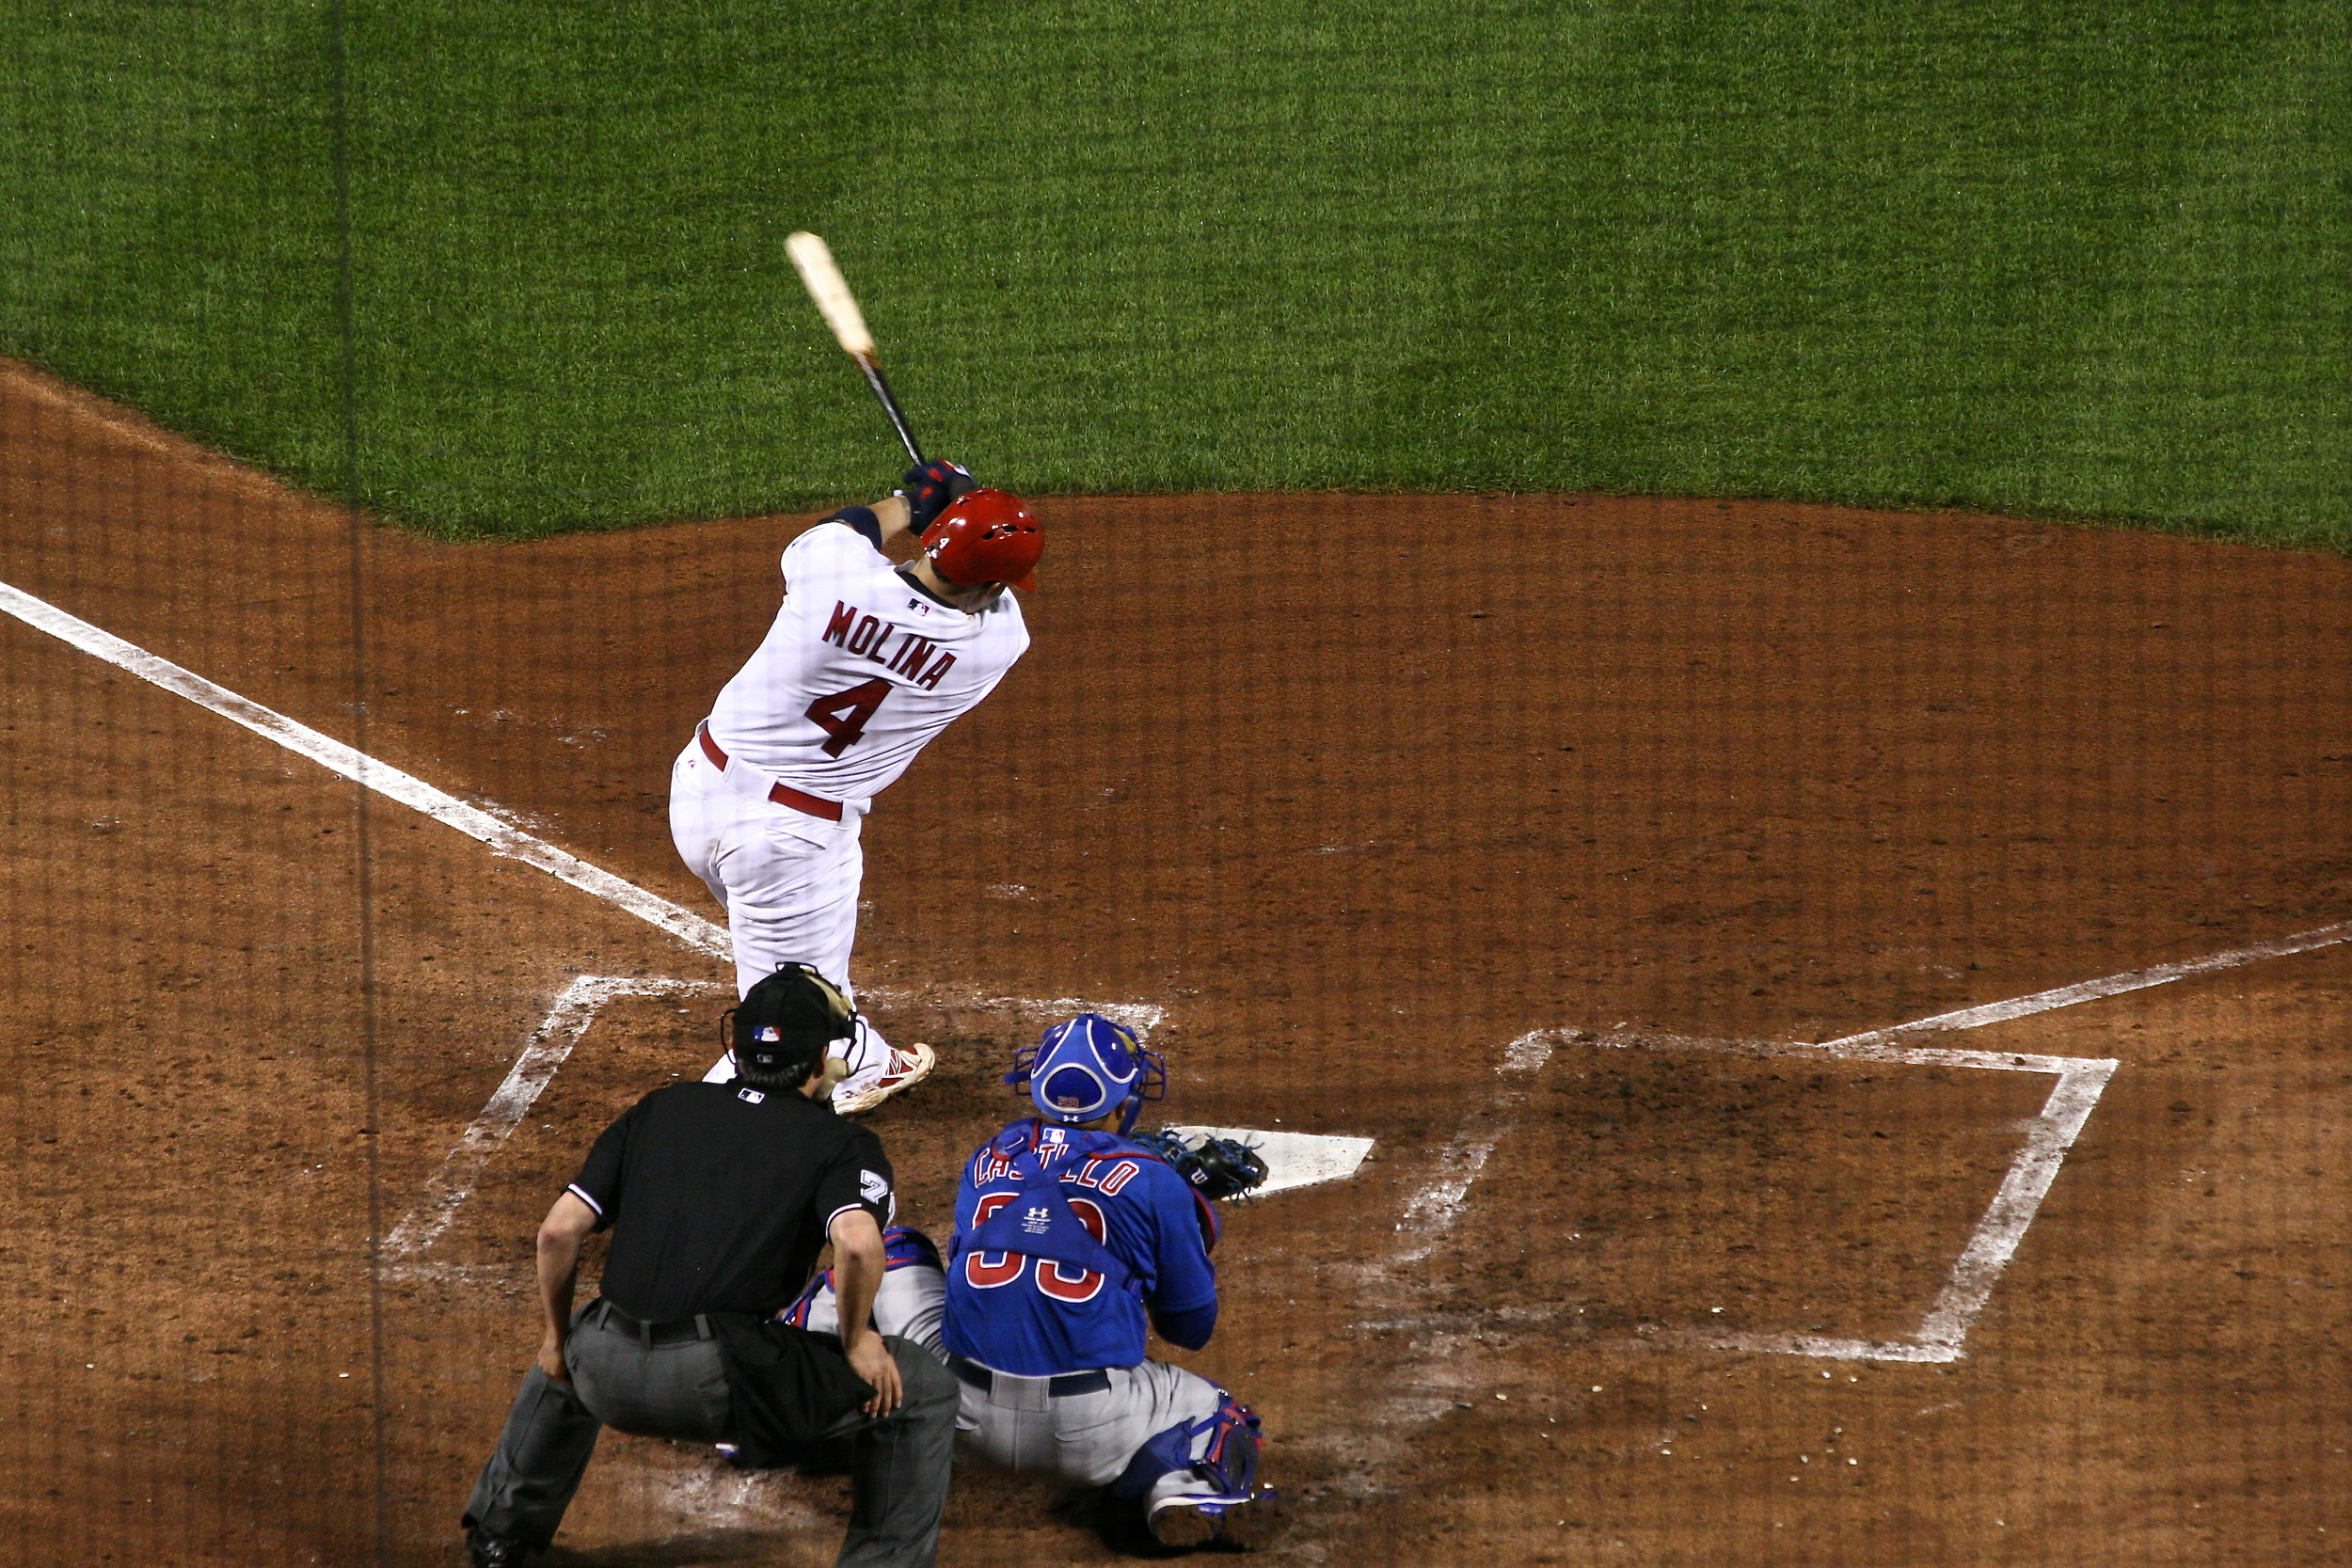 Yadier Molina double in the 4th